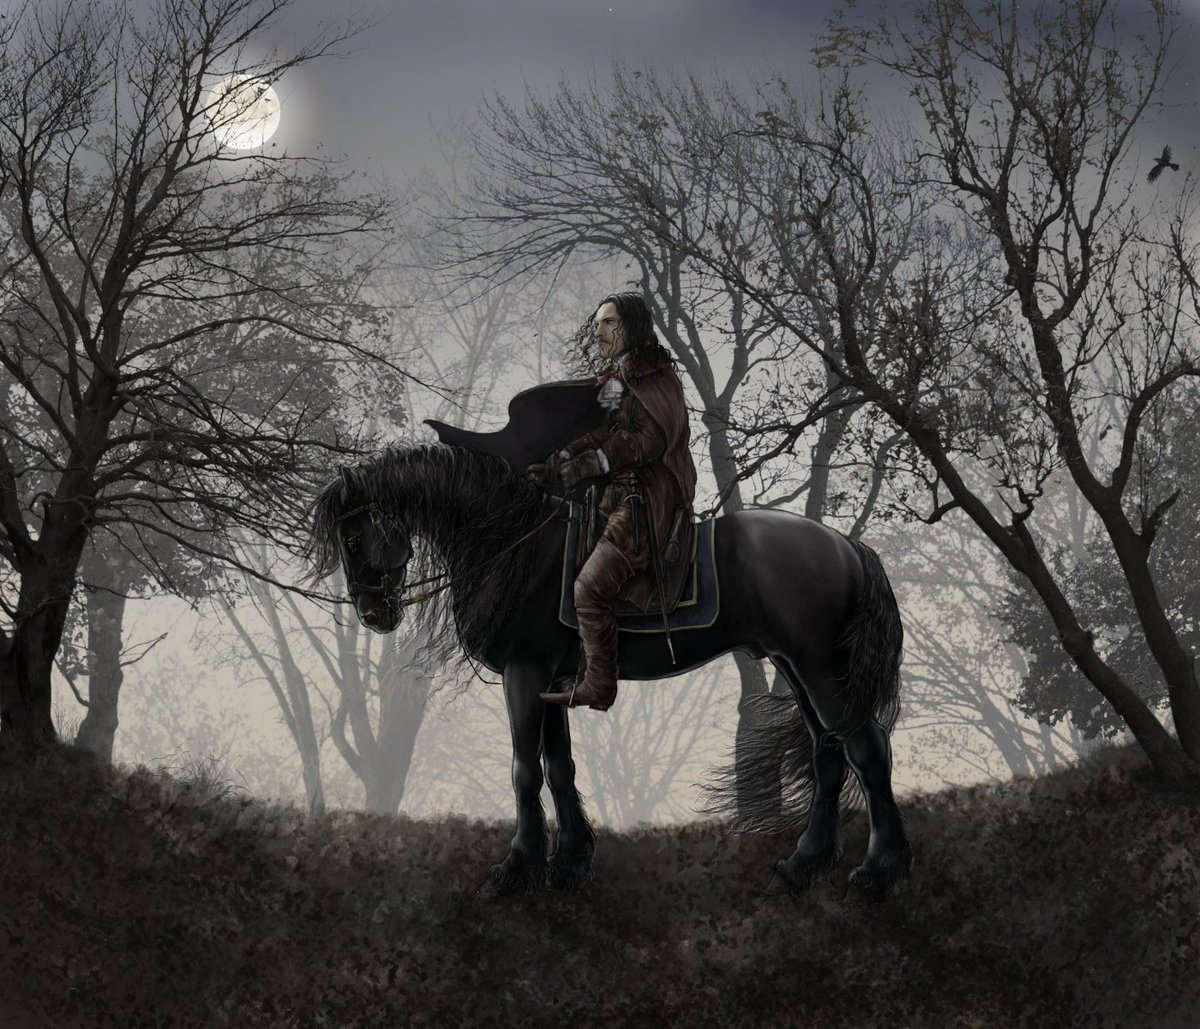 Paint And Roses On Twitter Fabien Marchal Runyantygh And His Stunning Black Horse Minos In The Moonlit Woods Versailles Full Size Here Https T Co S0jsyp3jpe Https T Co 28k8jdacnu